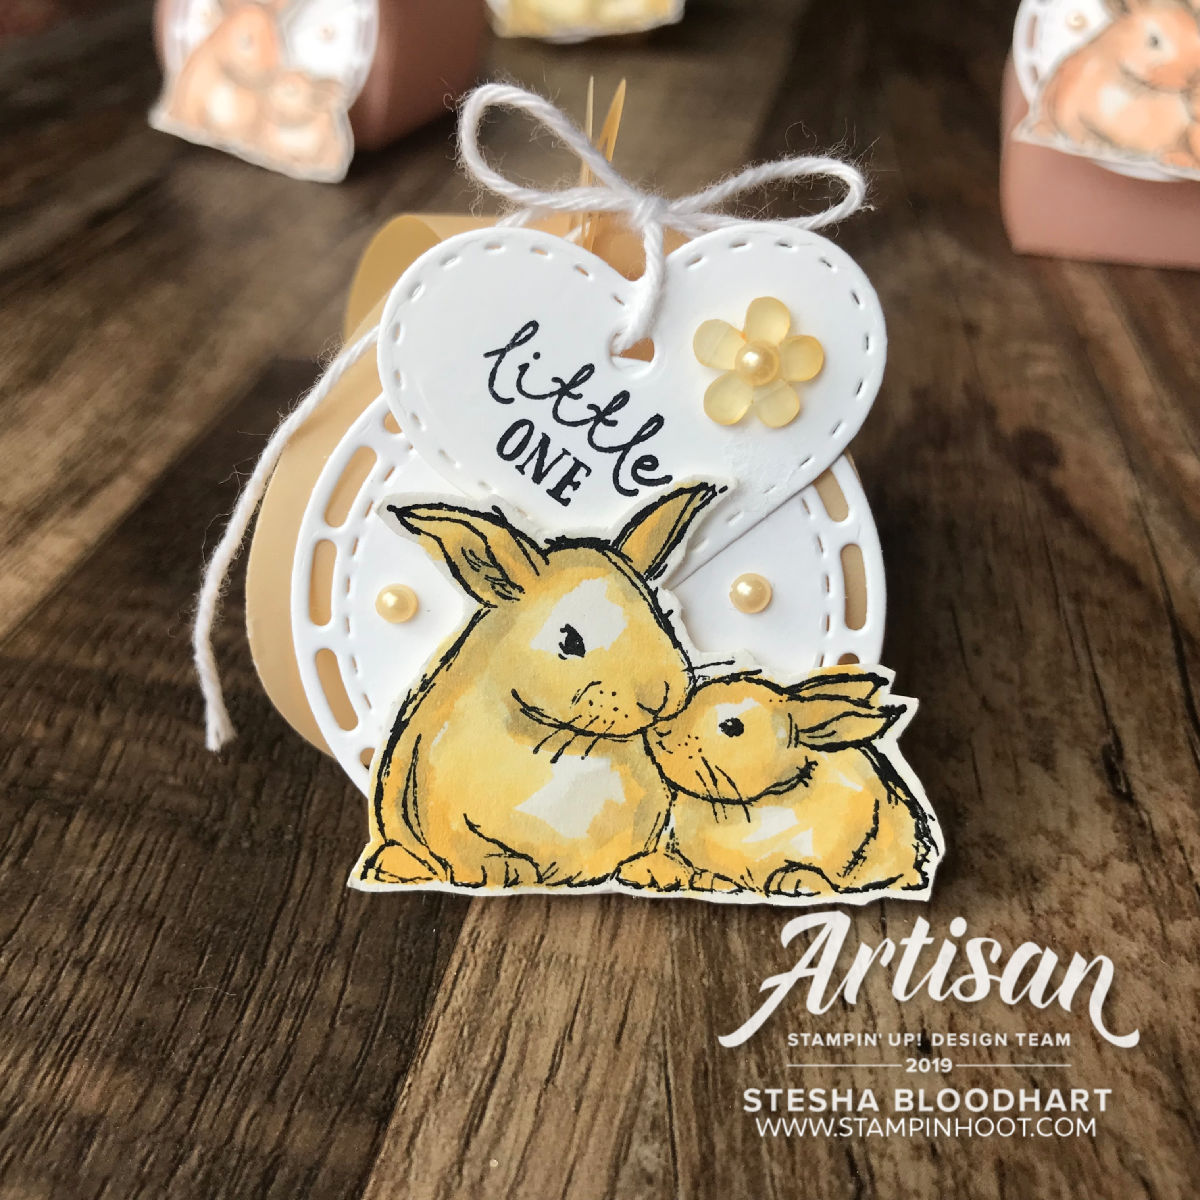 Mini Curvy Keepsake Baby Shower Treats by Stesha Bloodhart, Stampin' Hoot! 2019 Artisan Design Team